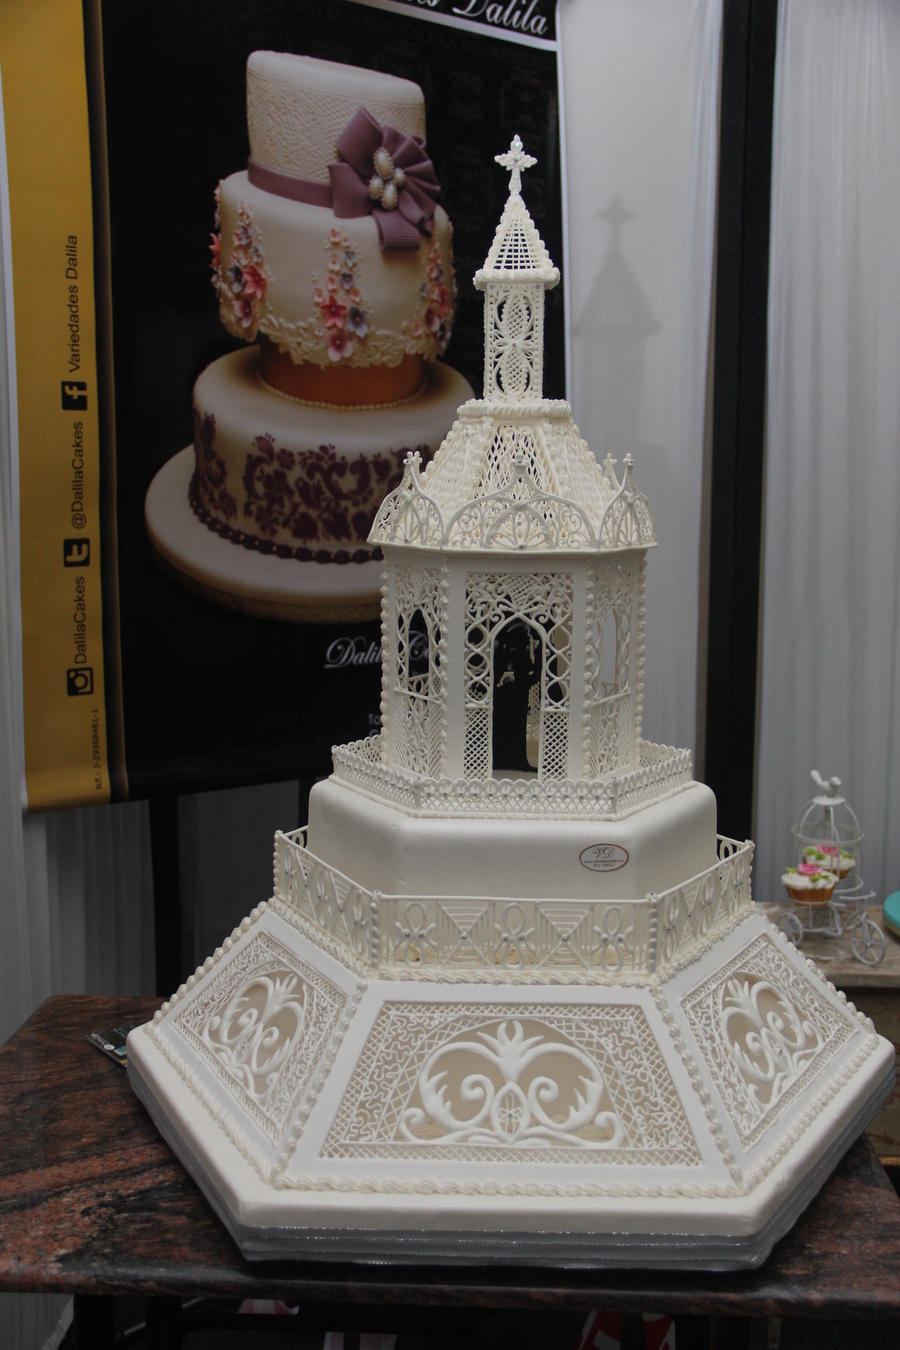 All Decoration And Chapel Made In Royal Icing on Cake Central